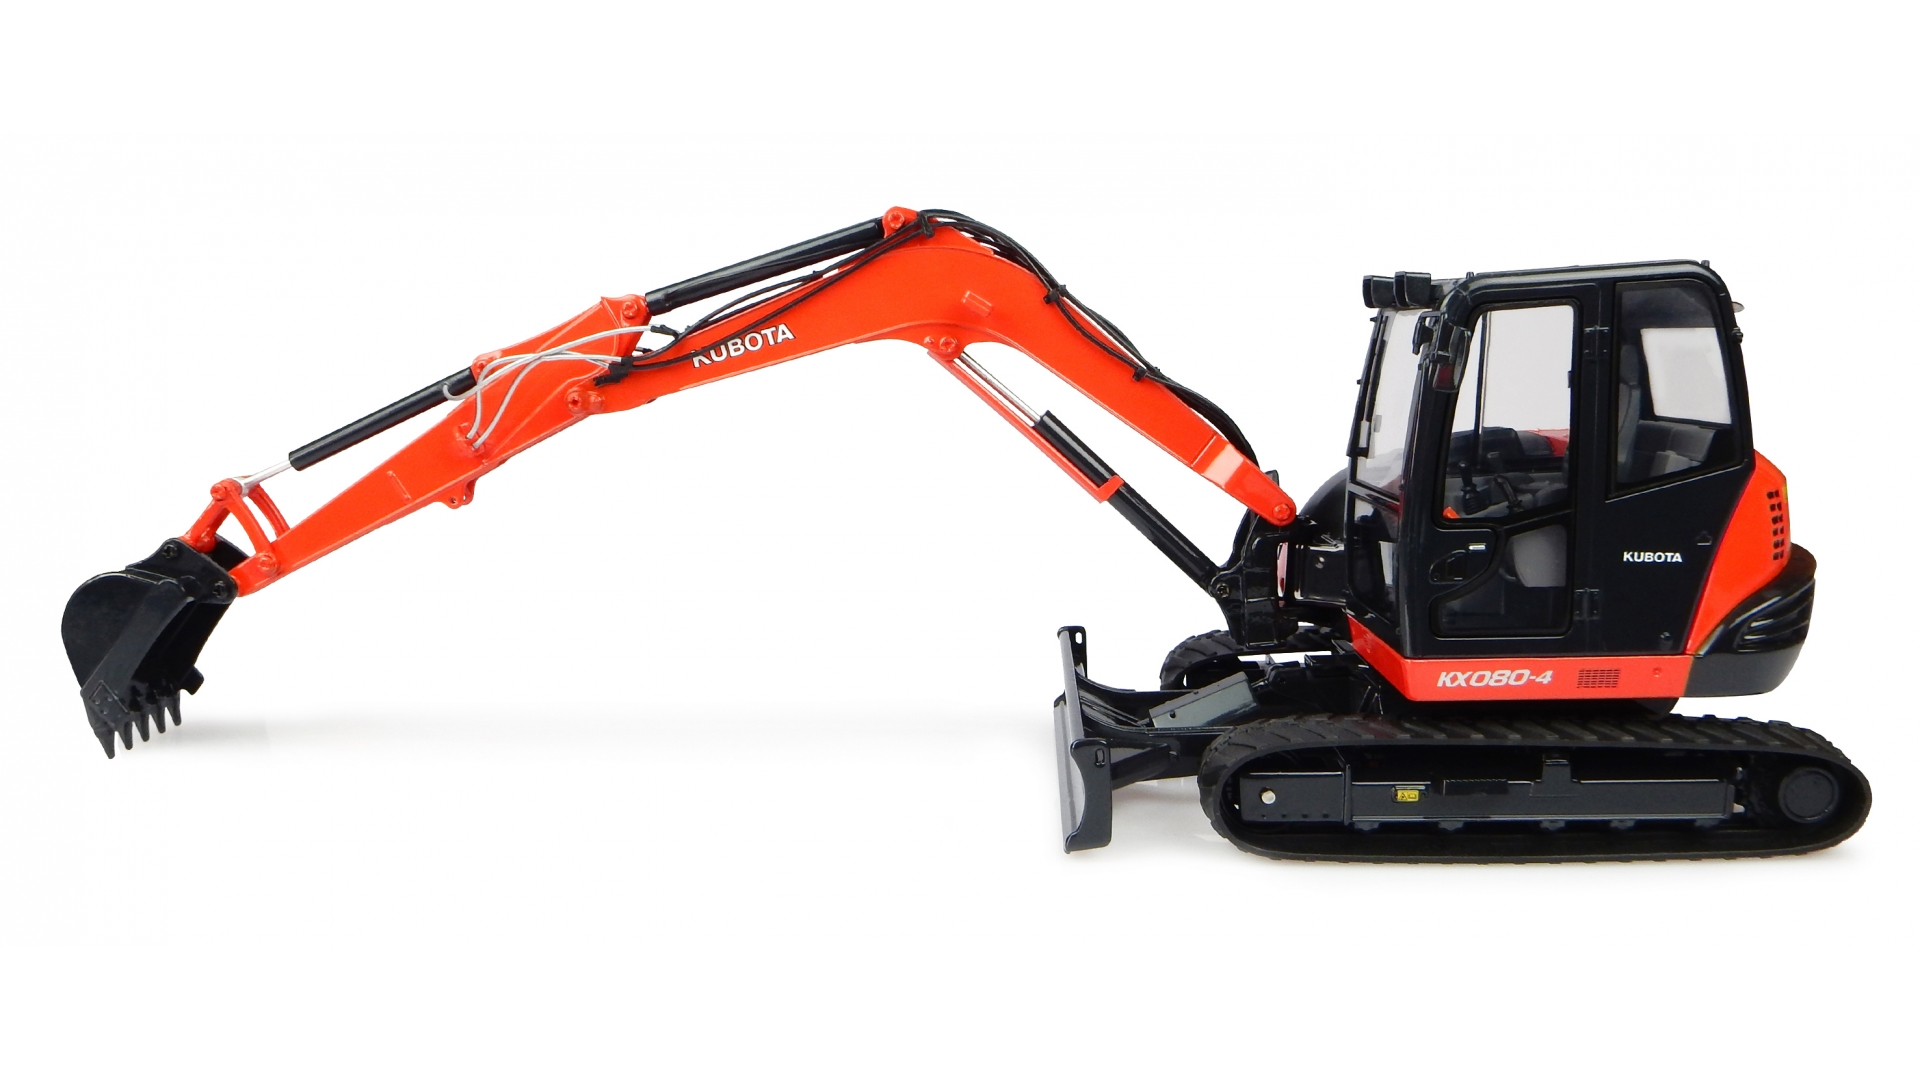 kubota-kx080-4-us-version